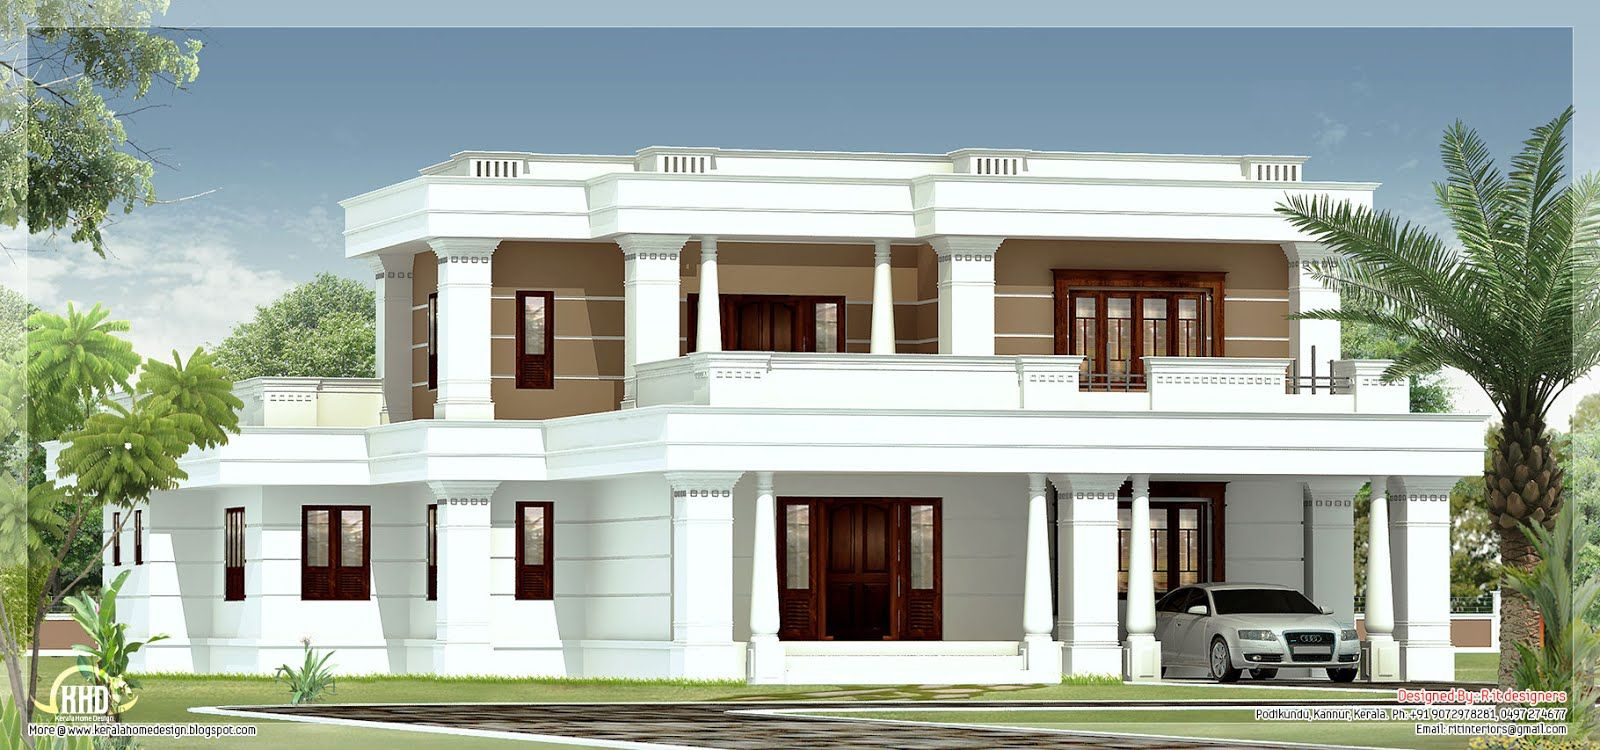 Flat Roof Homes Designs | November 2012   Kerala Home Design And Floor Plans